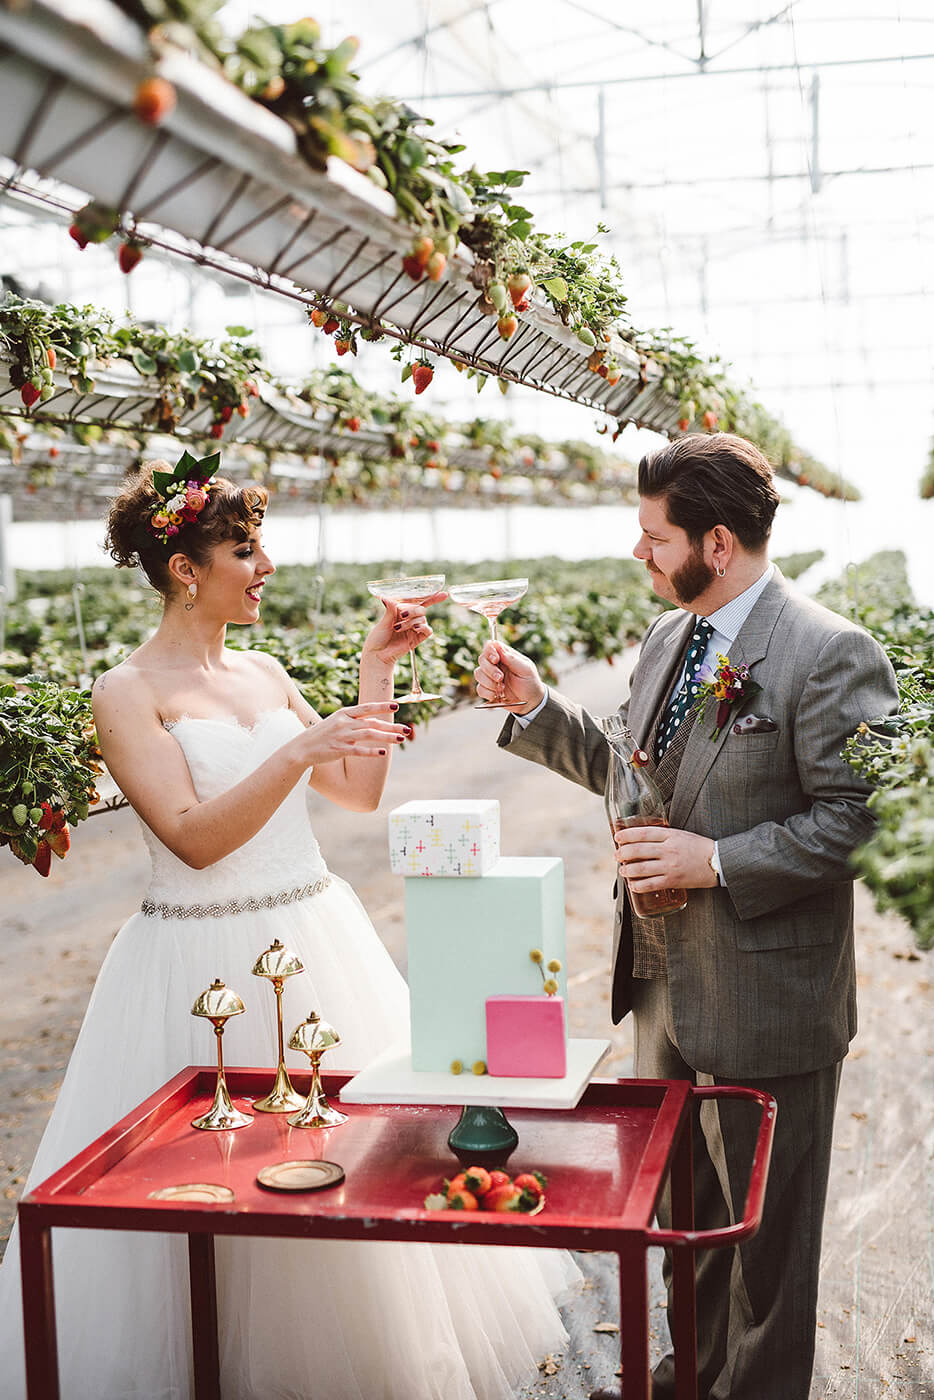 roma-organizacao-eventos-editorial-mid-century-modern-wedding-in-a-strawberry-field-28